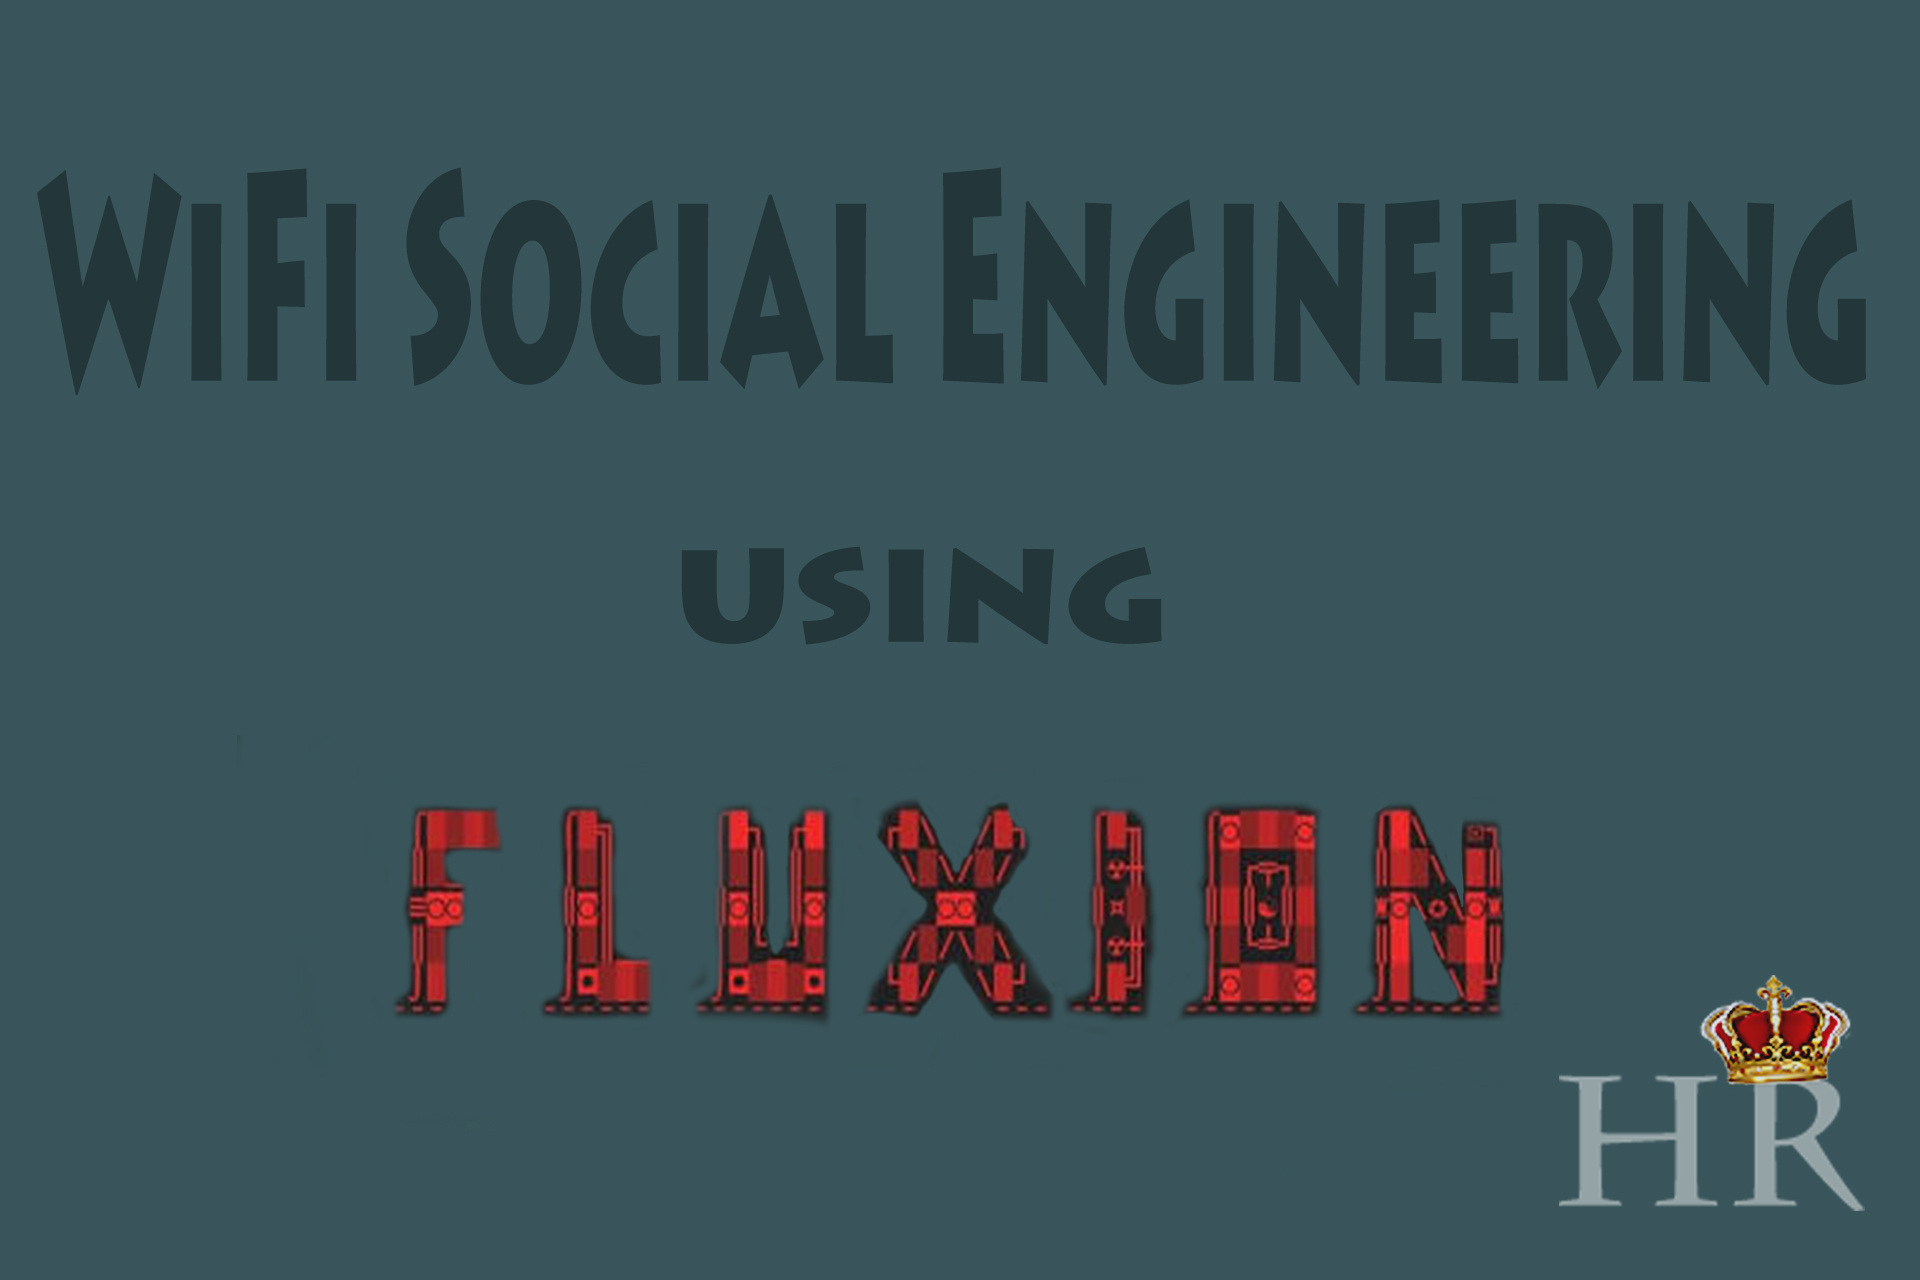 Hacking WiFi Social engineering method with Fluxion